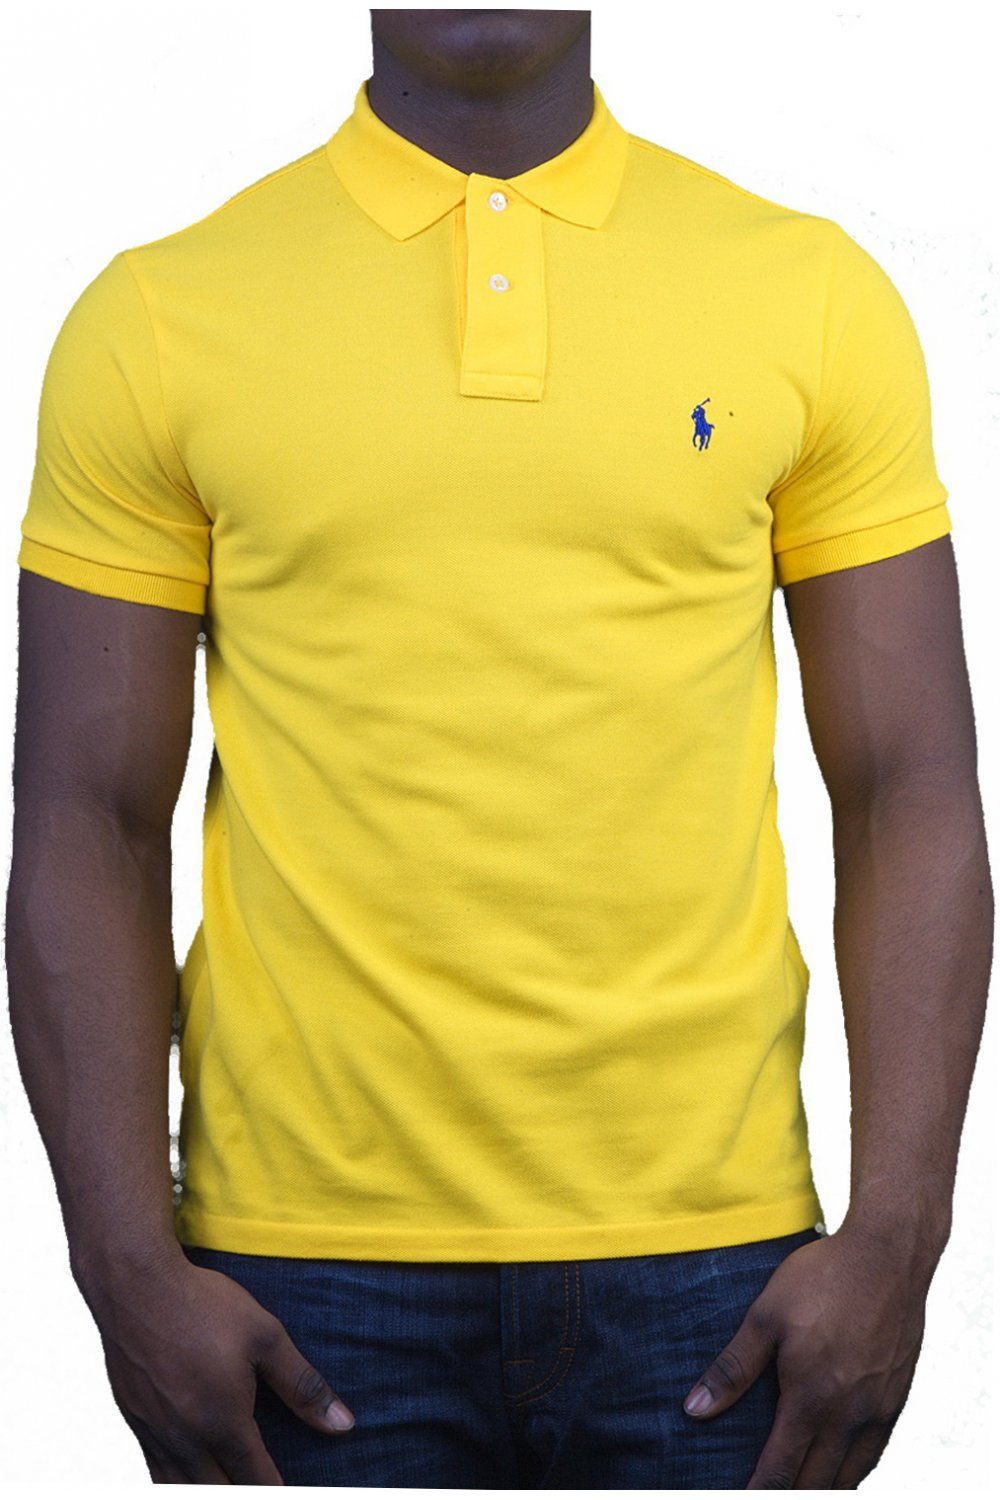 Polo ralph lauren slim fit polo t shirt in yellow for Slim fit collared shirts